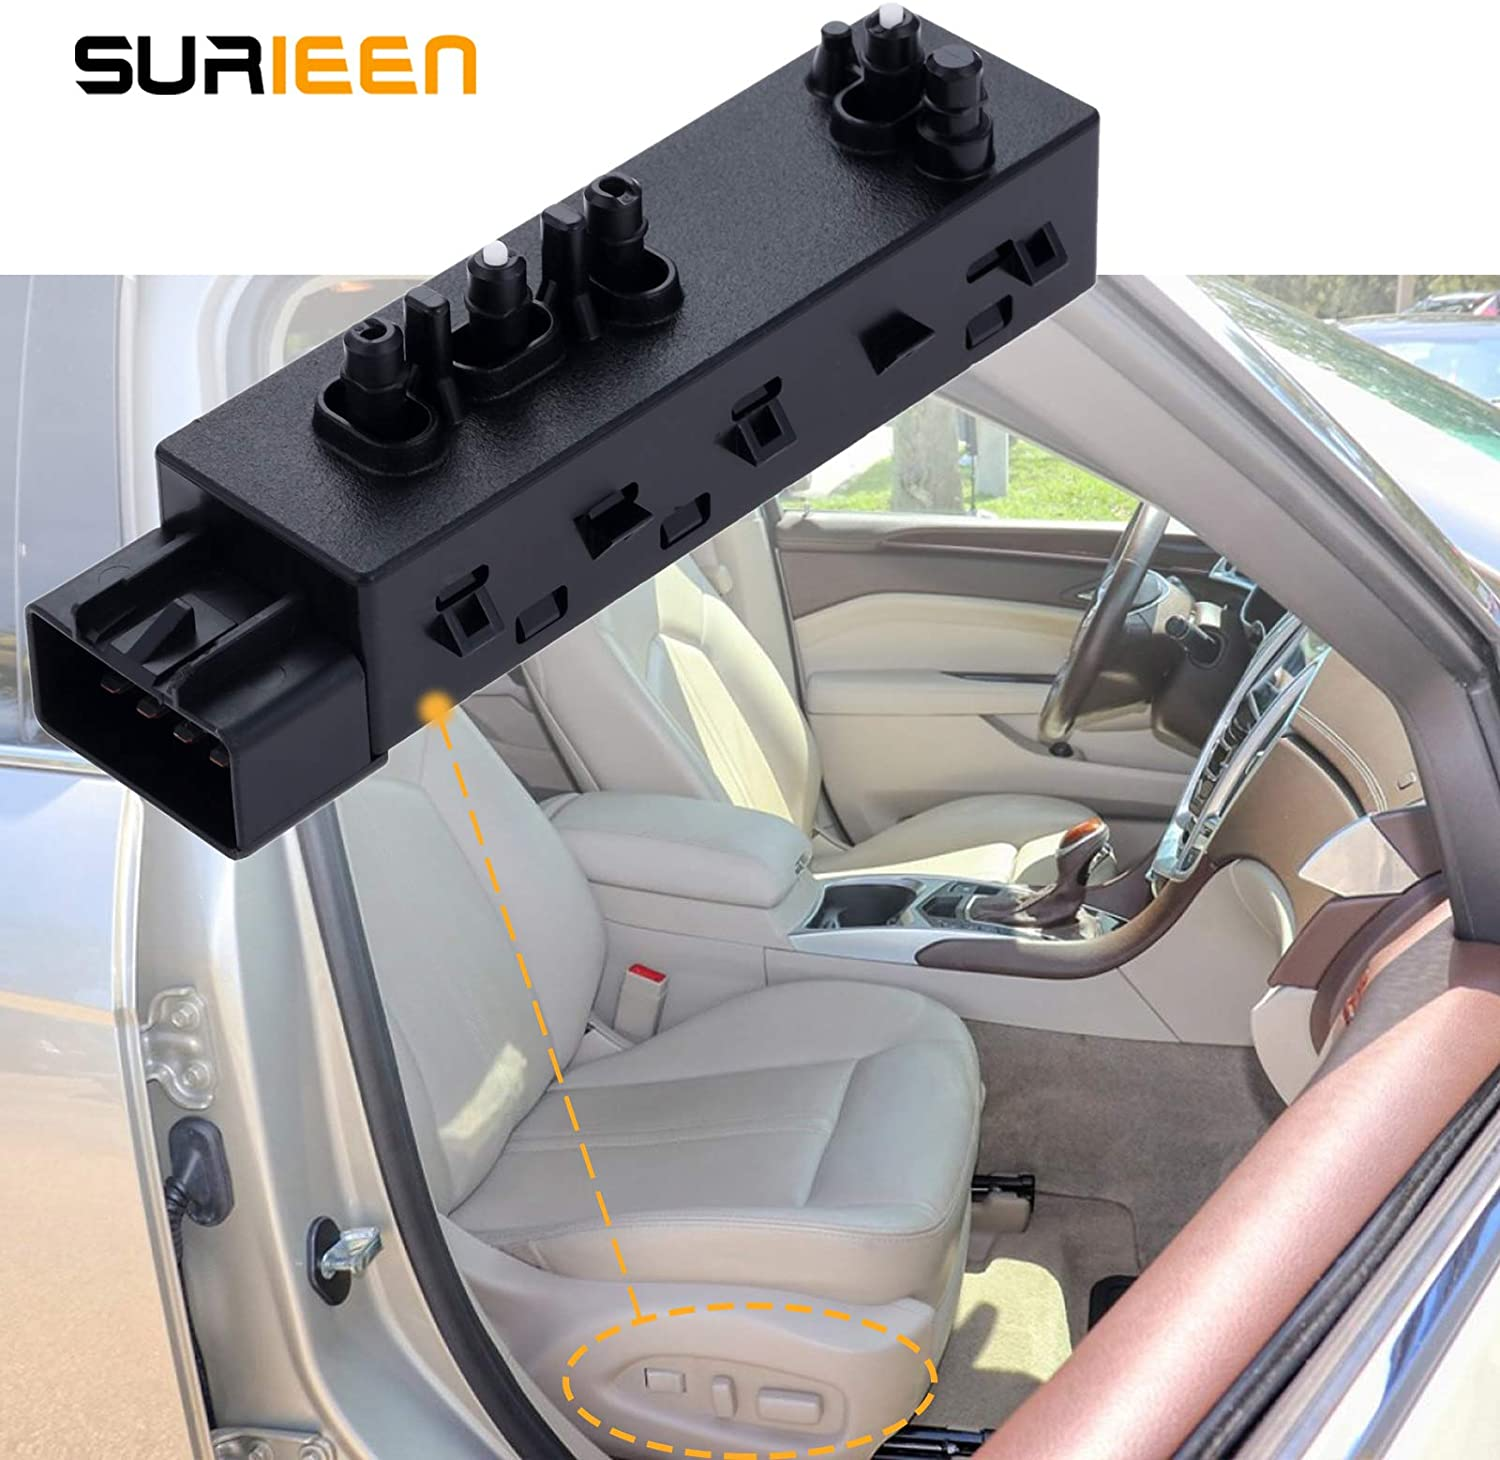 SURIEEN 12451497 Driver Power Seat Switch,10-Pins Front Left Seat Switch Driver Side Seat Adjust Push Button Switch Fits for Buick Chevrolet Cadillac SRX GMC Buick